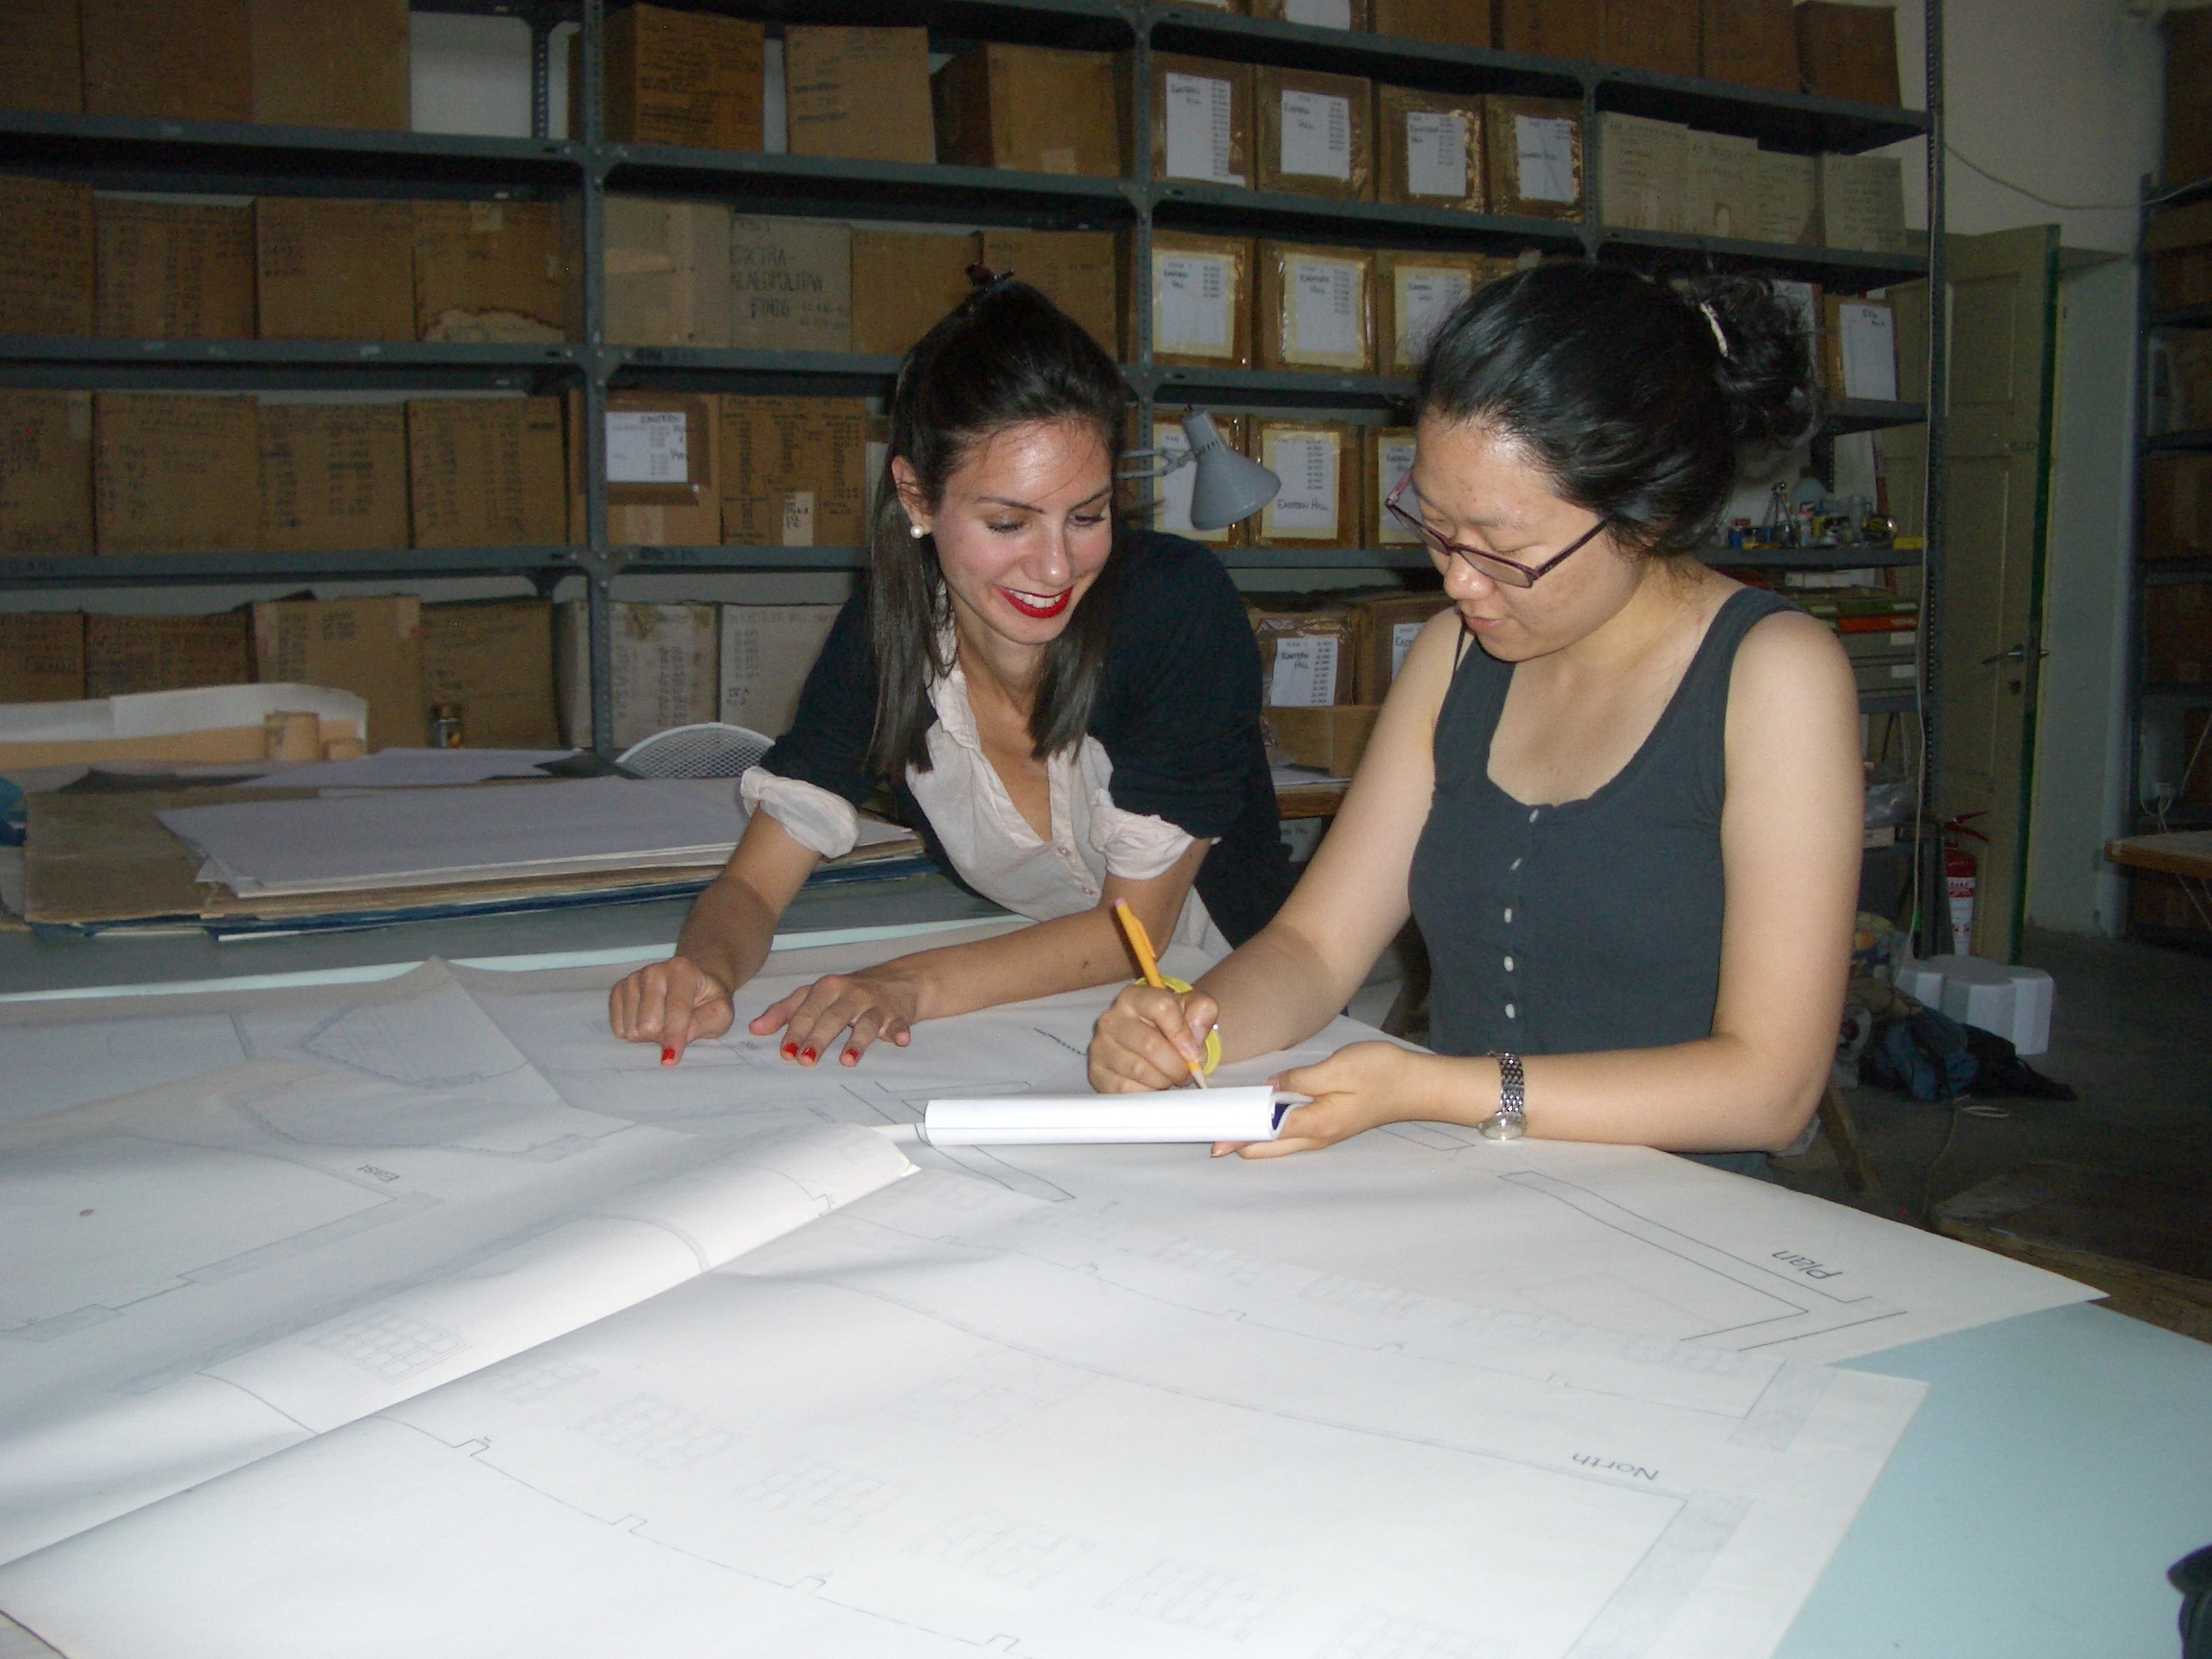 Gloria and I inspect architectural drawings